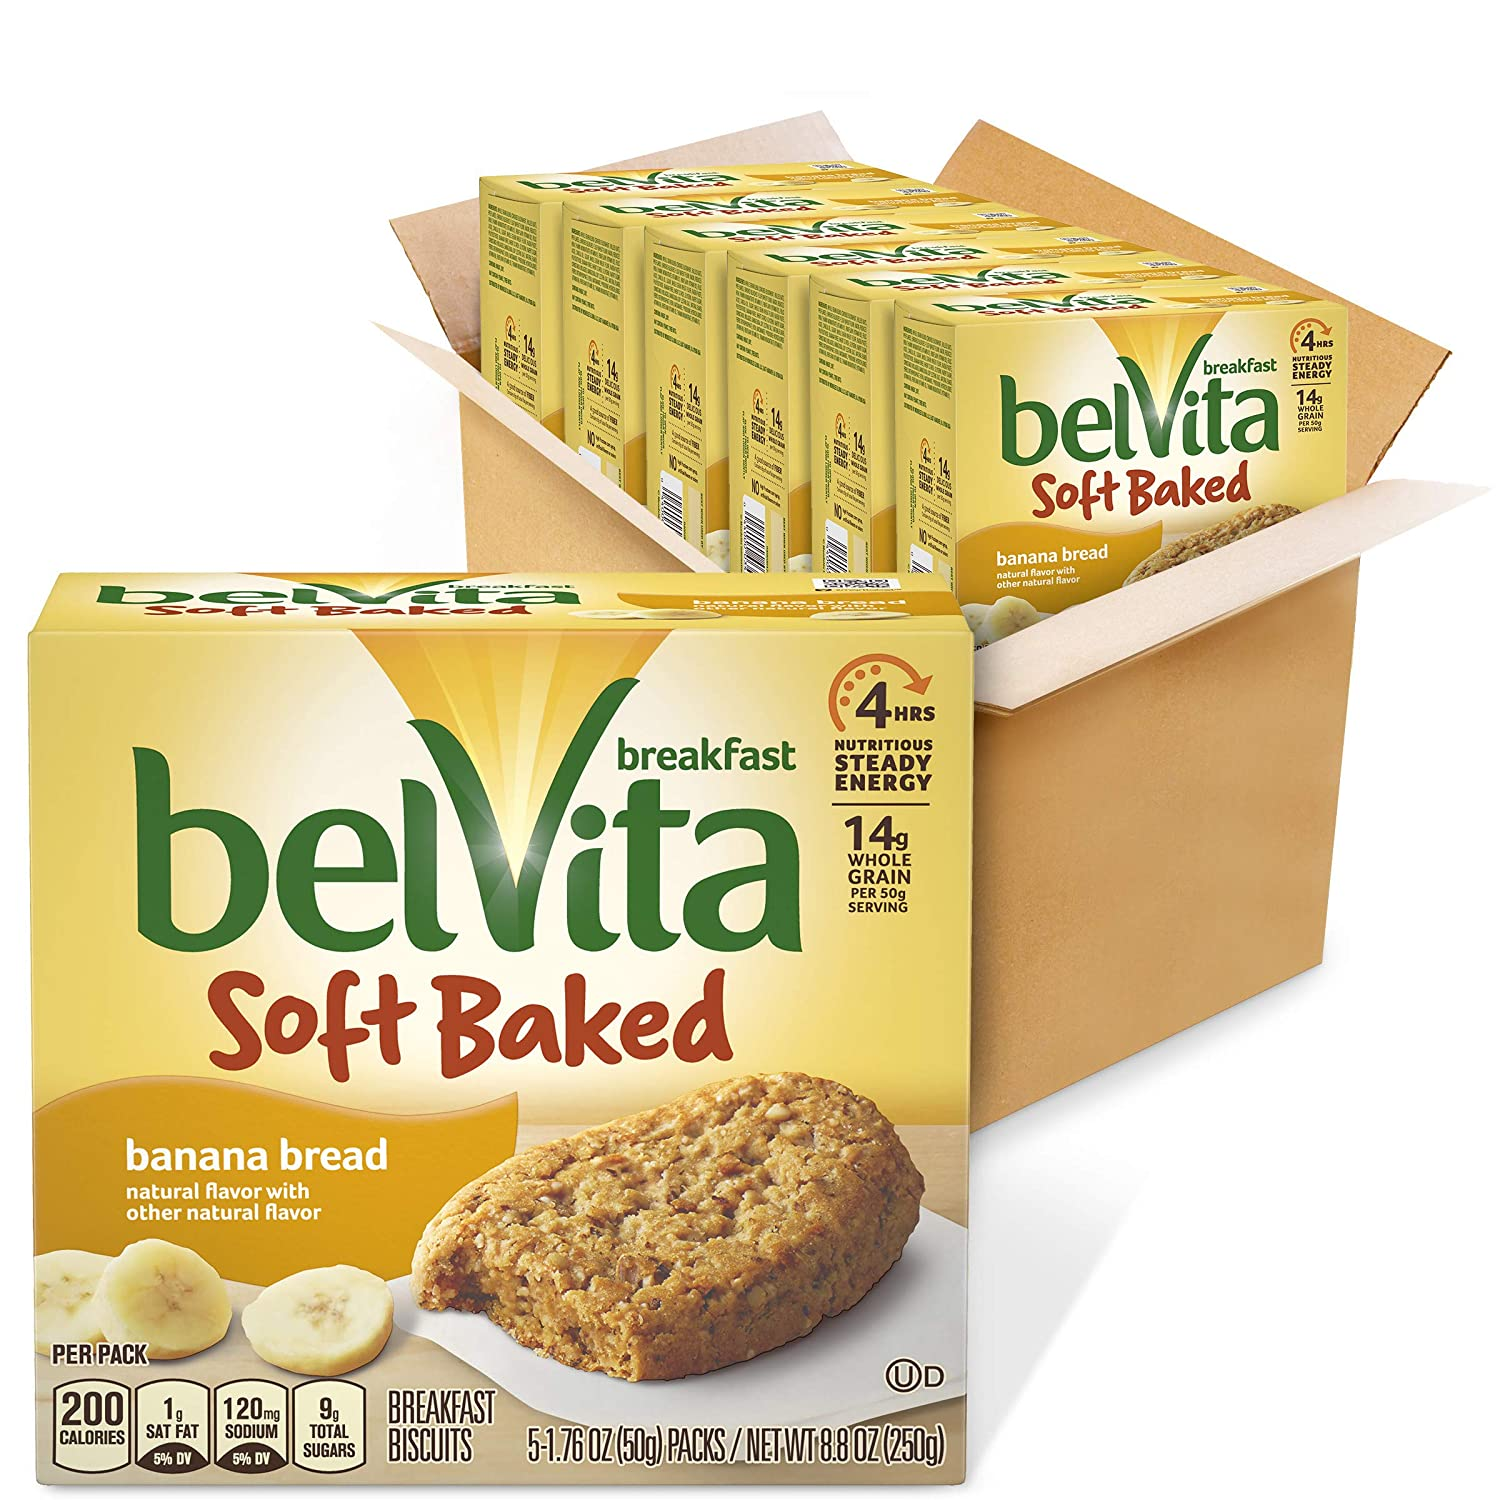 belVita Soft Baked Breakfast Biscuits 6-Box Pack as low as $2.01 per Box!